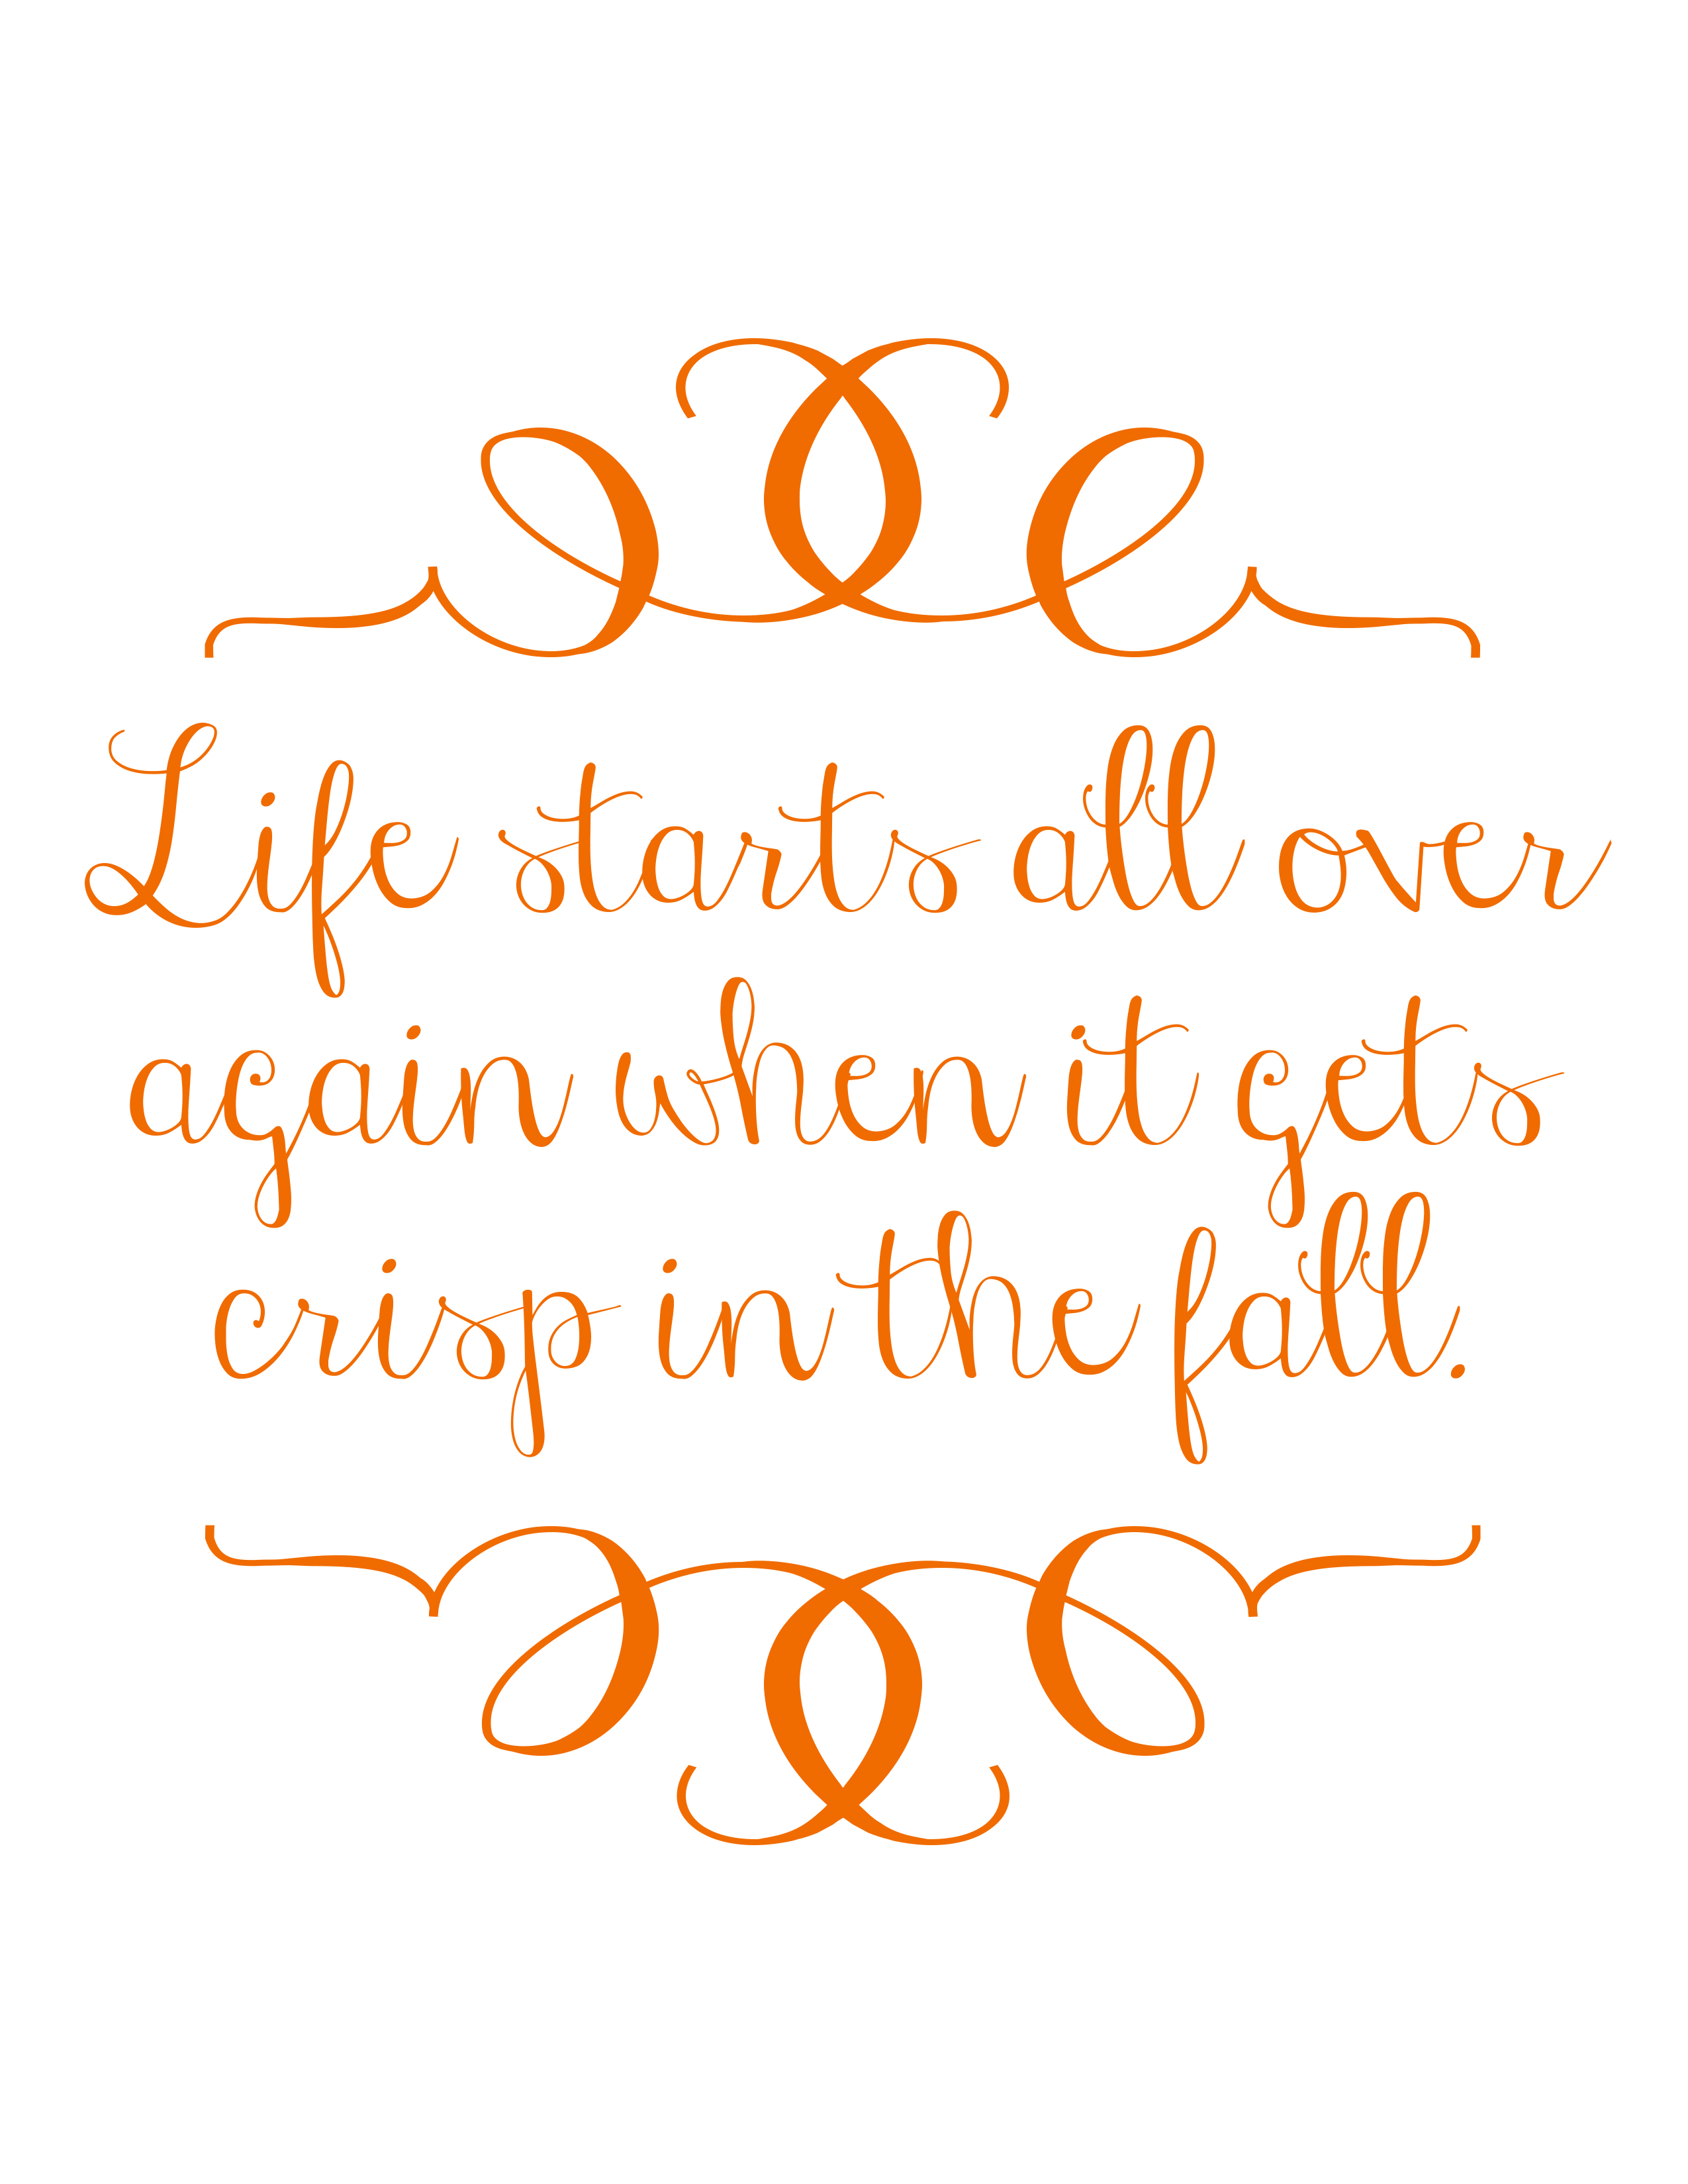 Each Is A Quote From F. Scott Fitzgeraldu0027s The Great Gatsby About Fall!  Theyu0027re All Designed To Be 8.5in X 11in Full Size..but Theyu0027d Be Super Cute  Framed ...